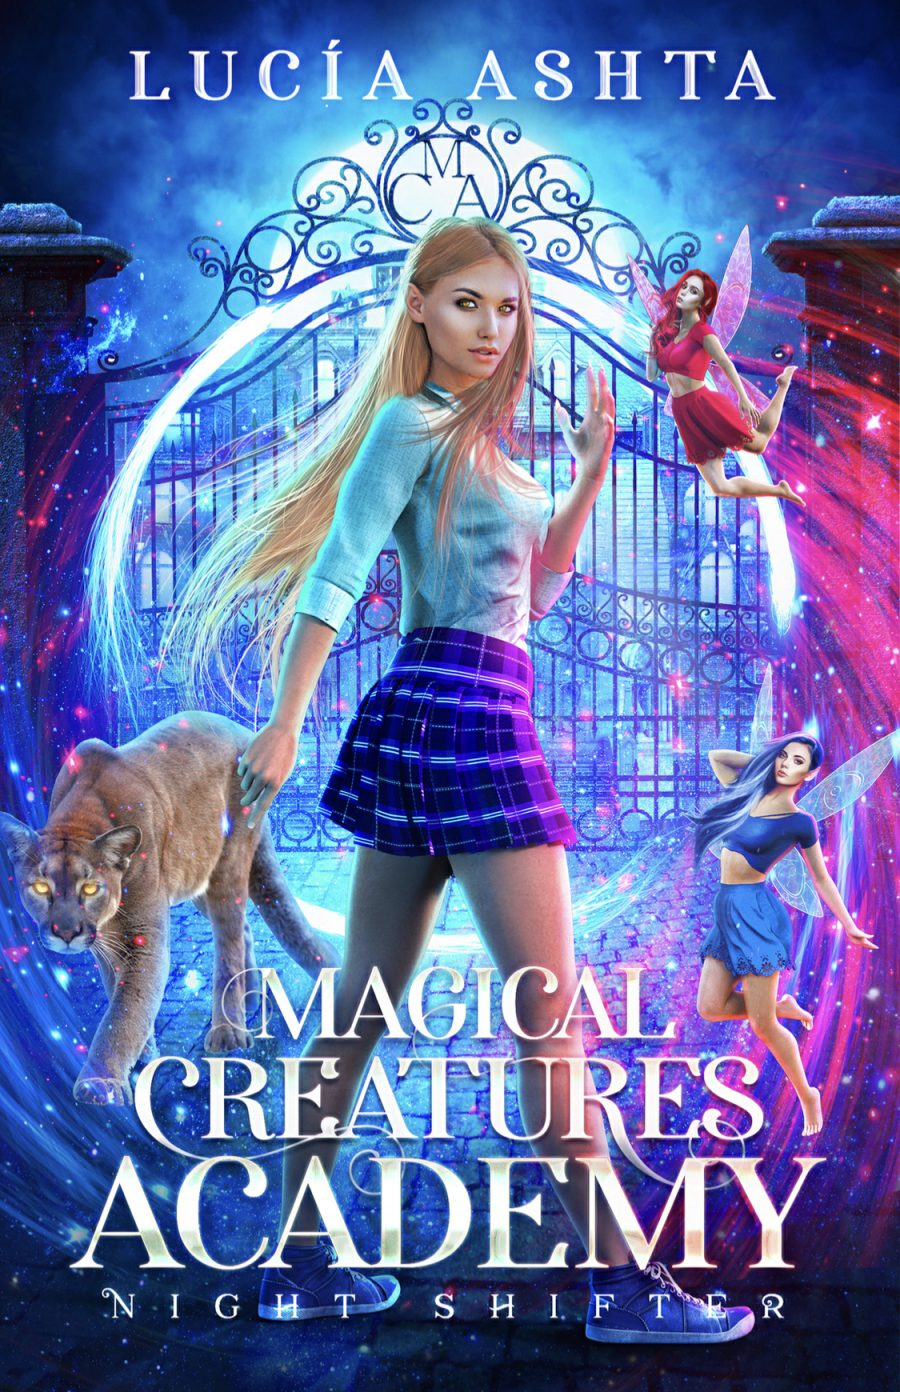 Night Shifter *Magical Creatures Academy - Book 1* by Lucia Ashta - A Book Review #BookReview #Fantasy #Academy #School #YA #NA #Paranormal